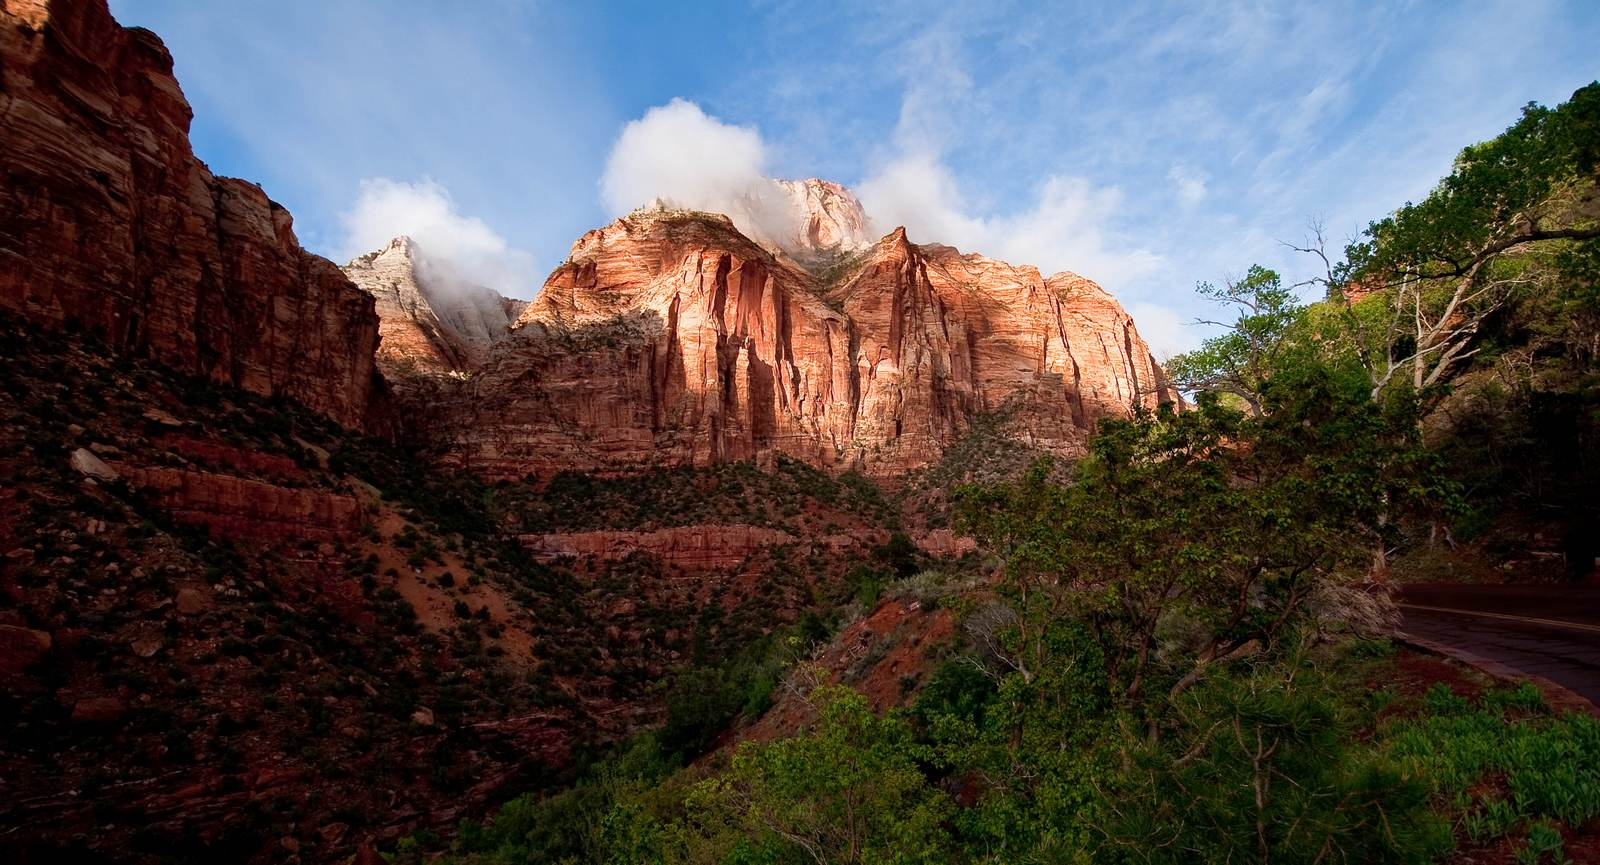 Zion-National-Park-in-utah-first-sunlight